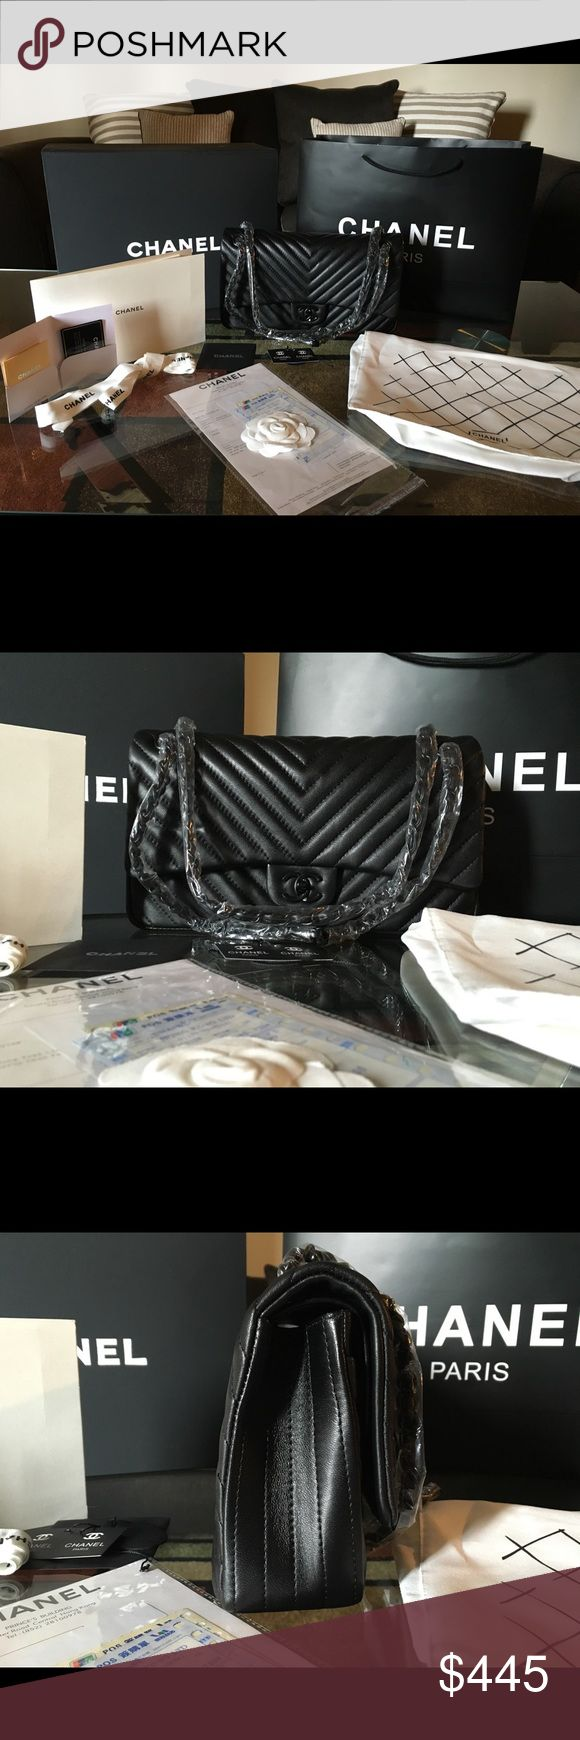 """Black Chevron So Black double Flap bag BRAND NEW. Chevron So Black Jumbo Lambskin with Black Hardware. Comes with magnetic box, paper bag, camellia flower, dust bag, ribbon, pamphlet care, cards, receipts.  💯 1:1 Top quality.    """" Lowest price thru ♏️ercari , Local Meetups or 🅿️aypal""""          Email me for more pictures at jadeg6822@gmail. com Bags Shoulder Bags"""